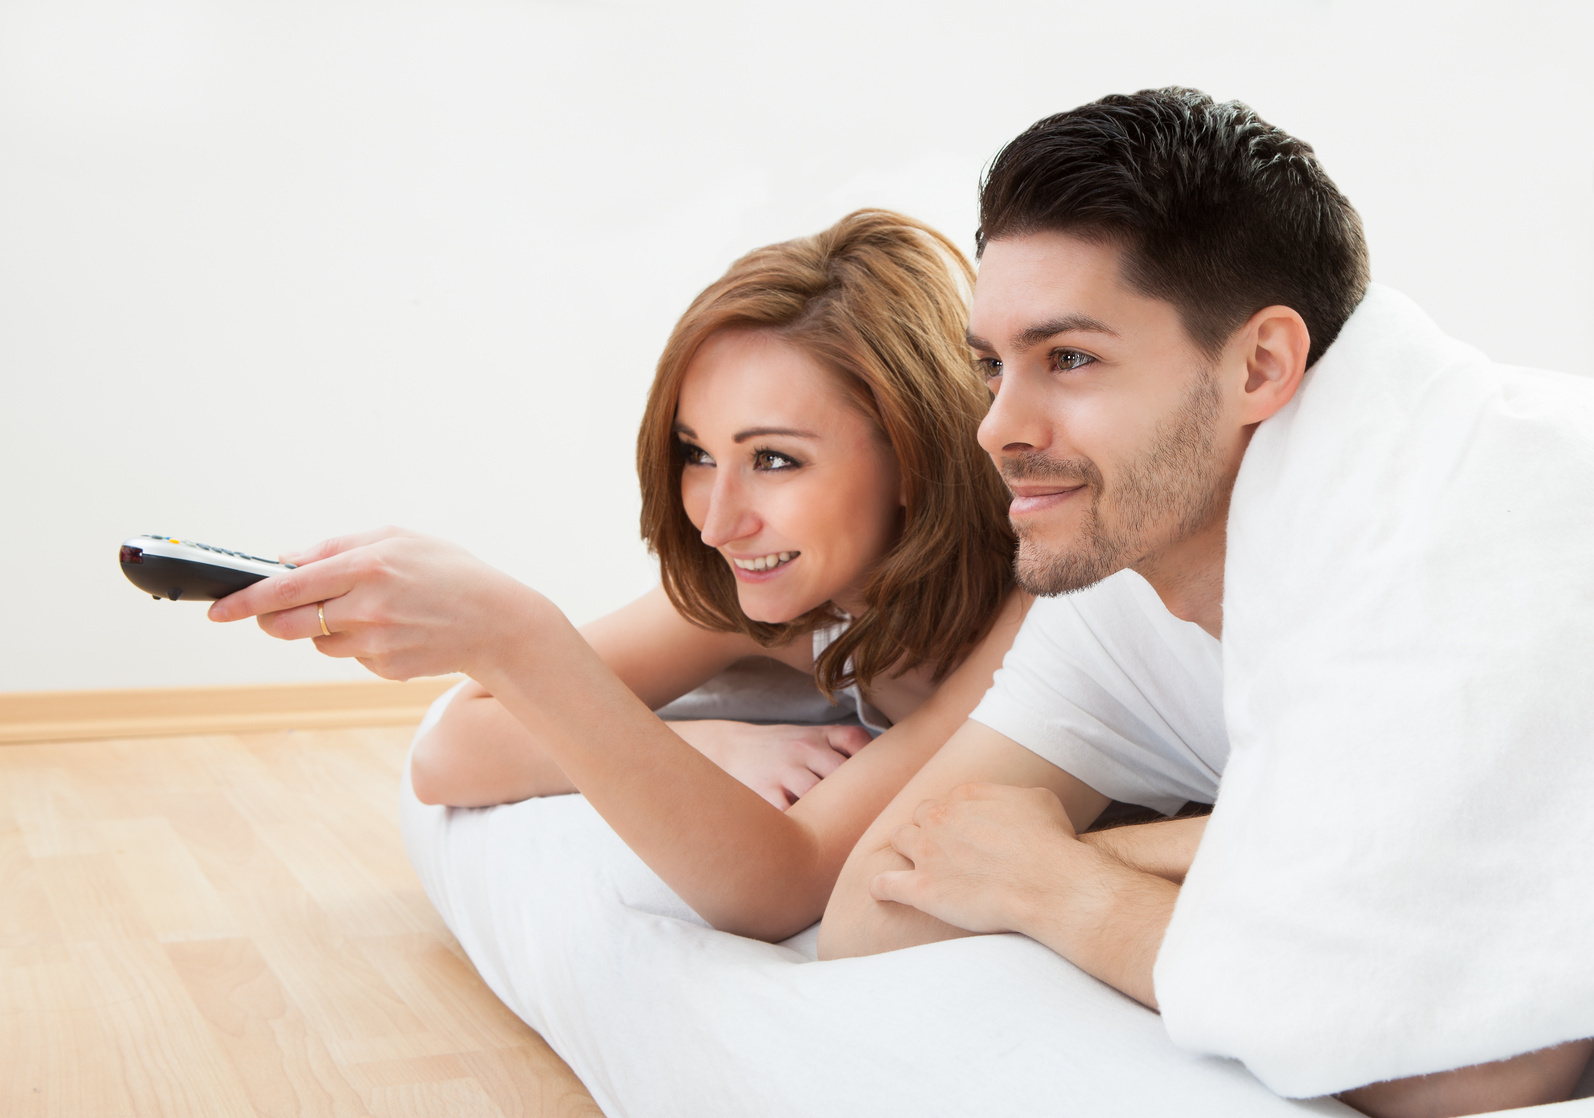 amazing ways to spice up your sex life